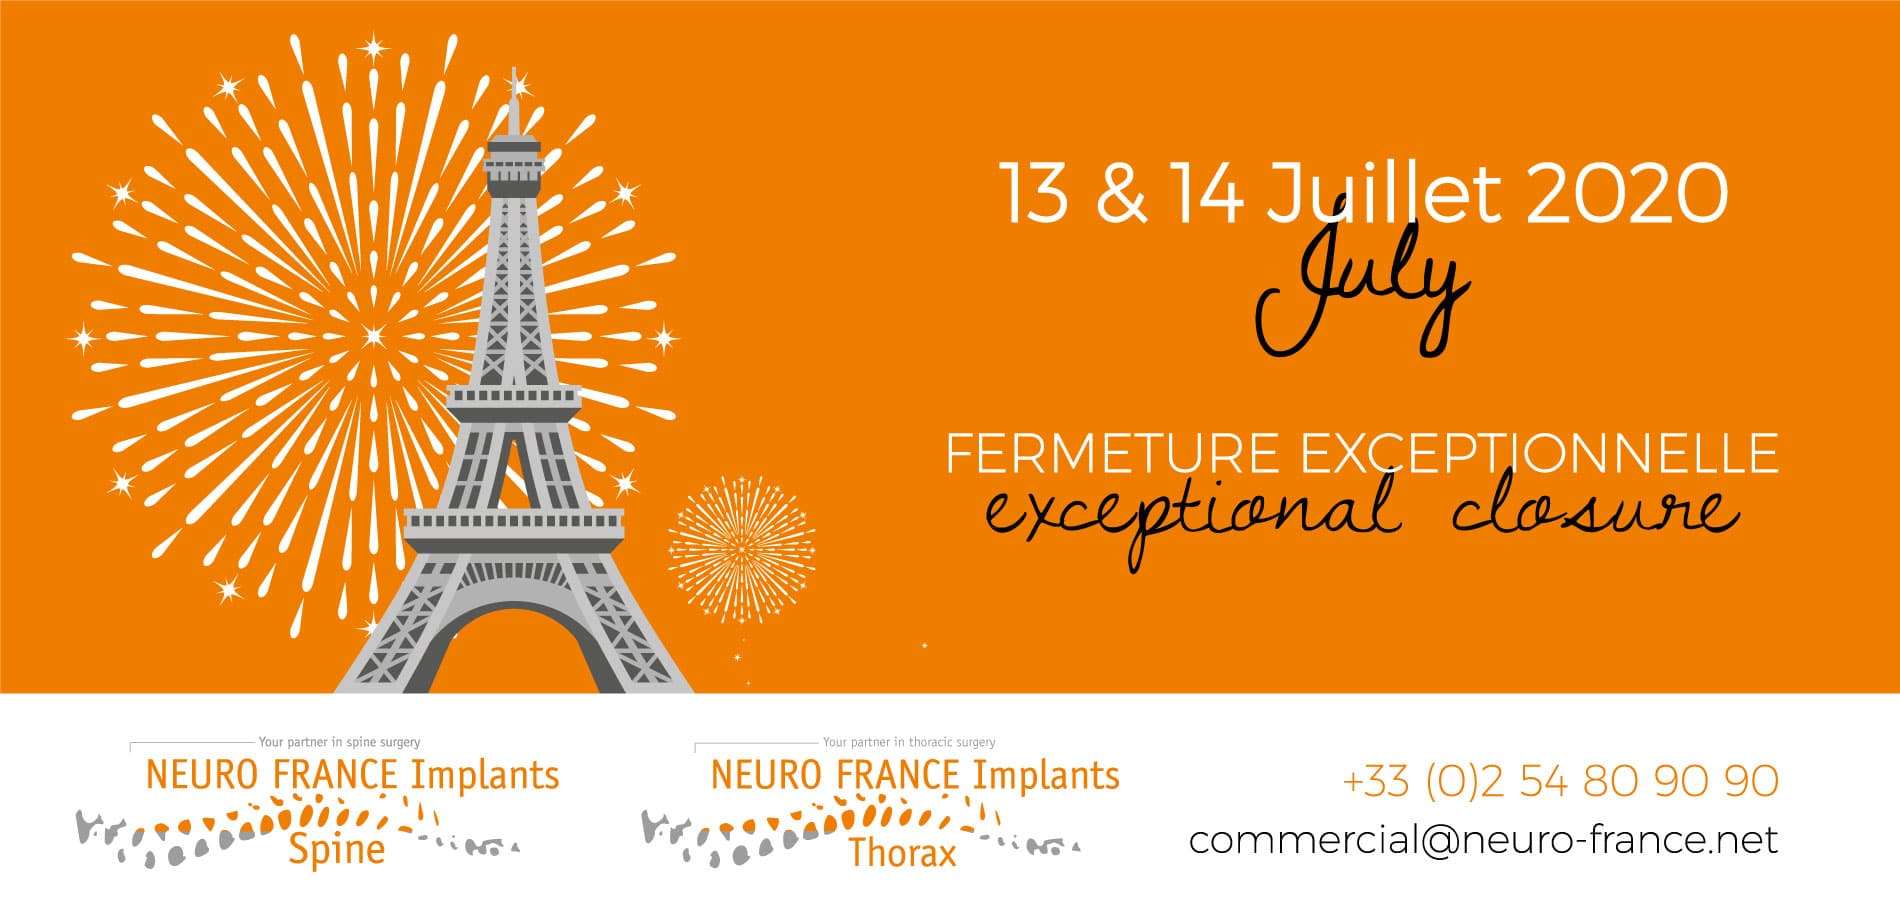 14 Juillet NEURO FRANCE Implants